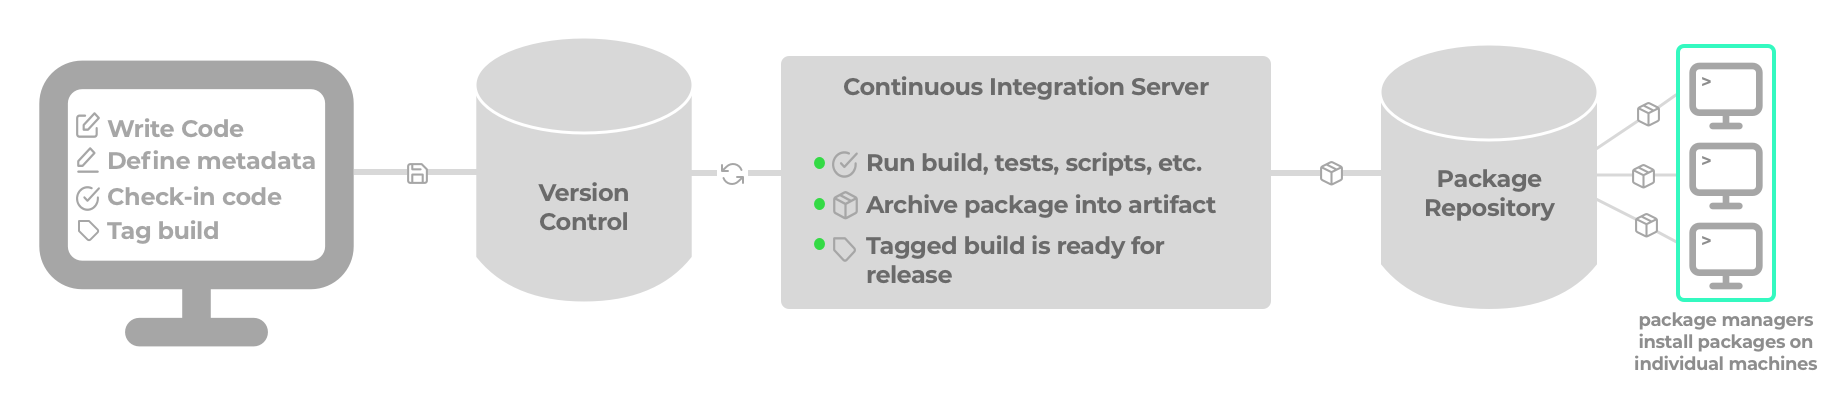 Continuous_package4.png